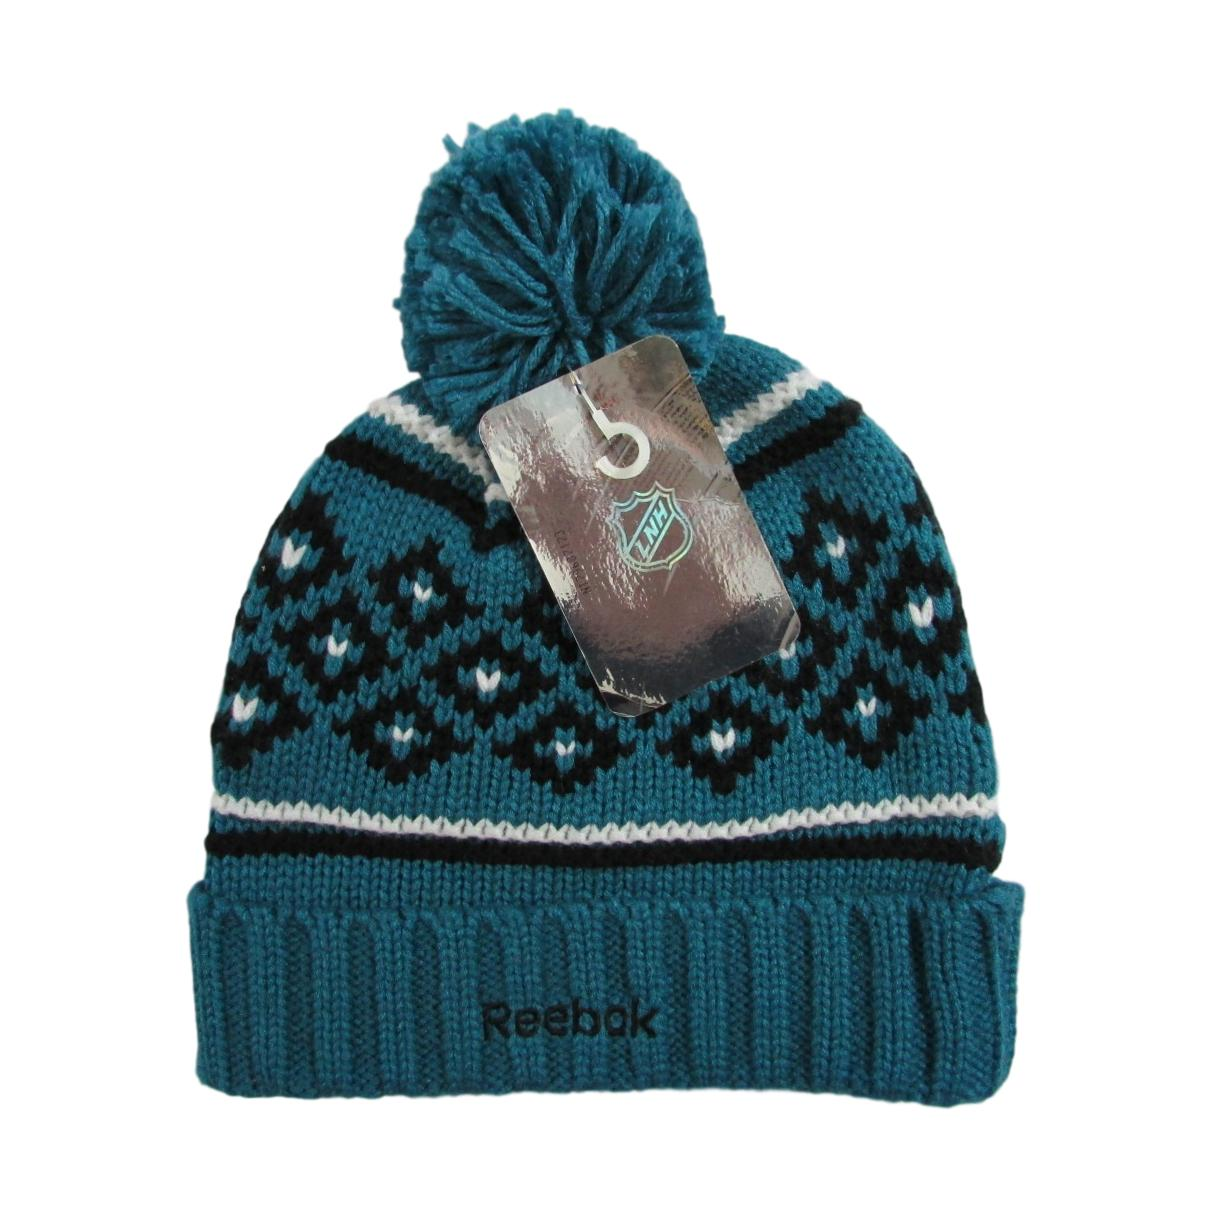 San Jose Sharks Winter Knit Hockey Beanie Reebok